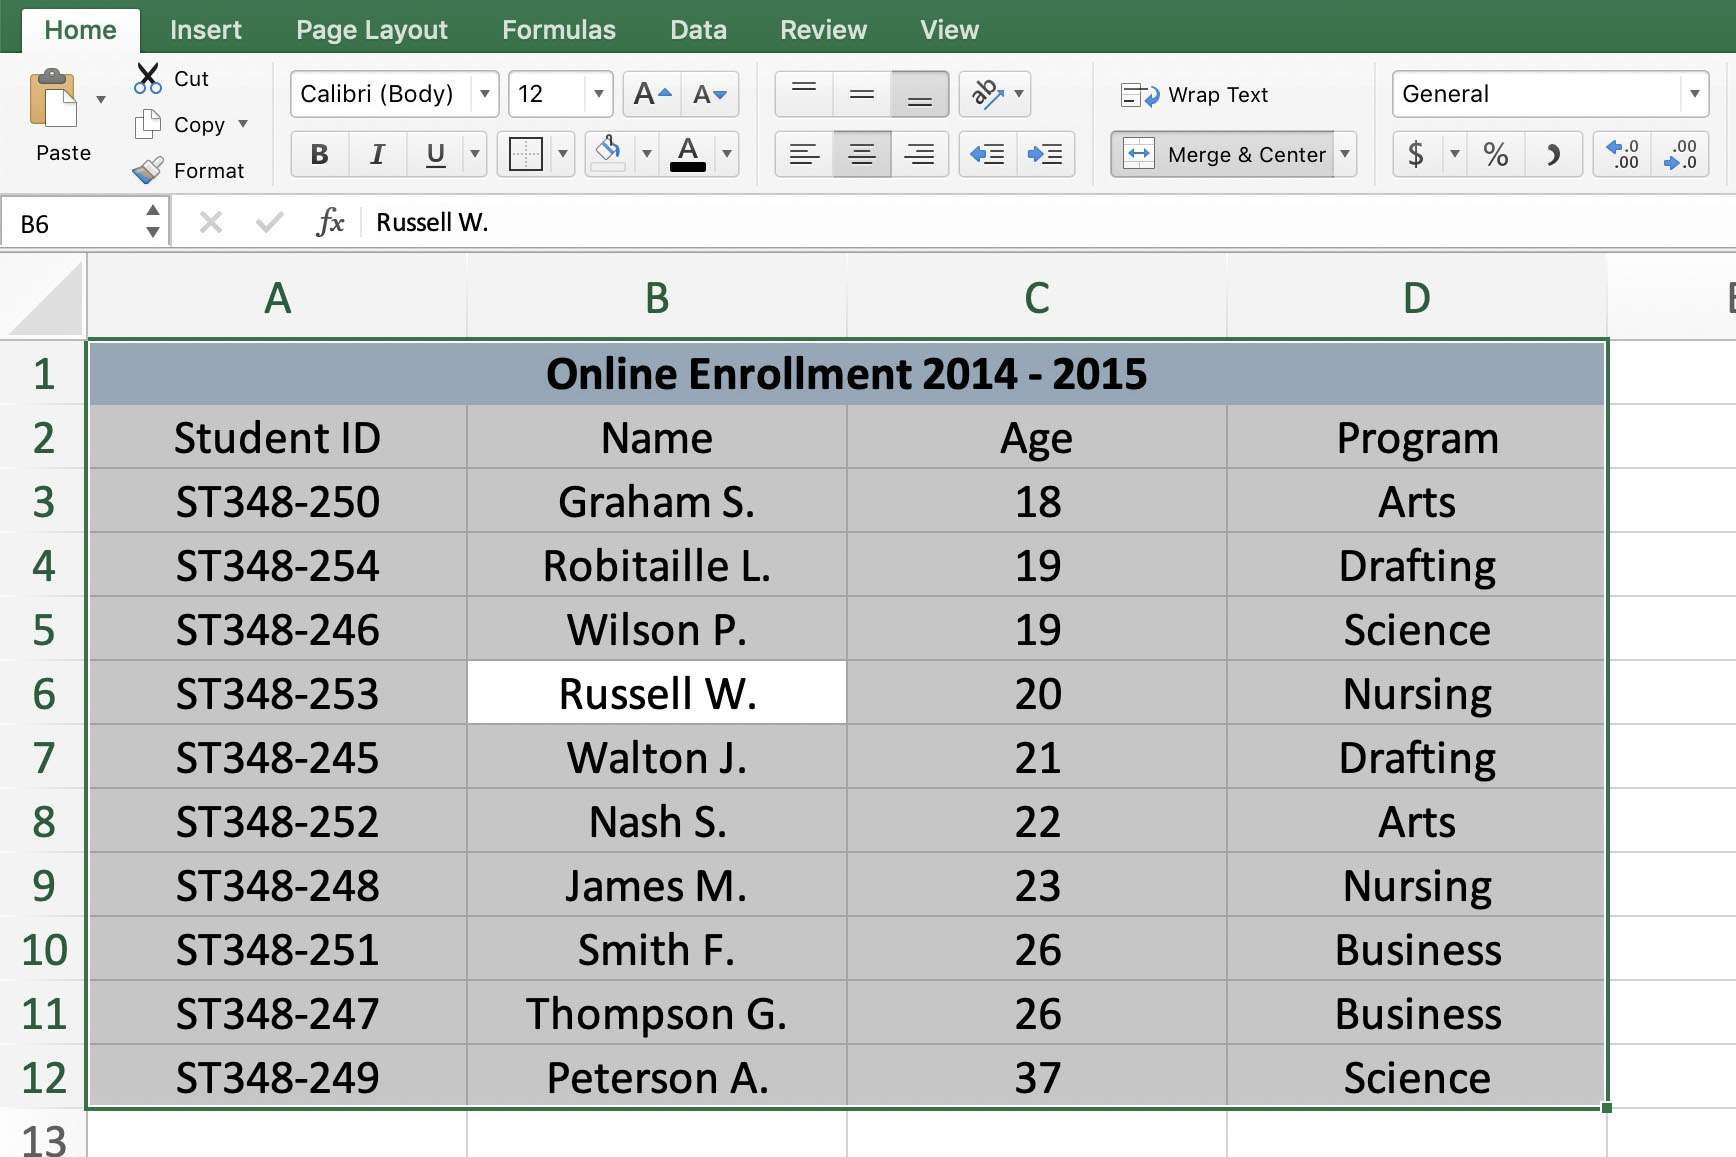 Excel Shortcuts to Select Rows, Columns, or Worksheets